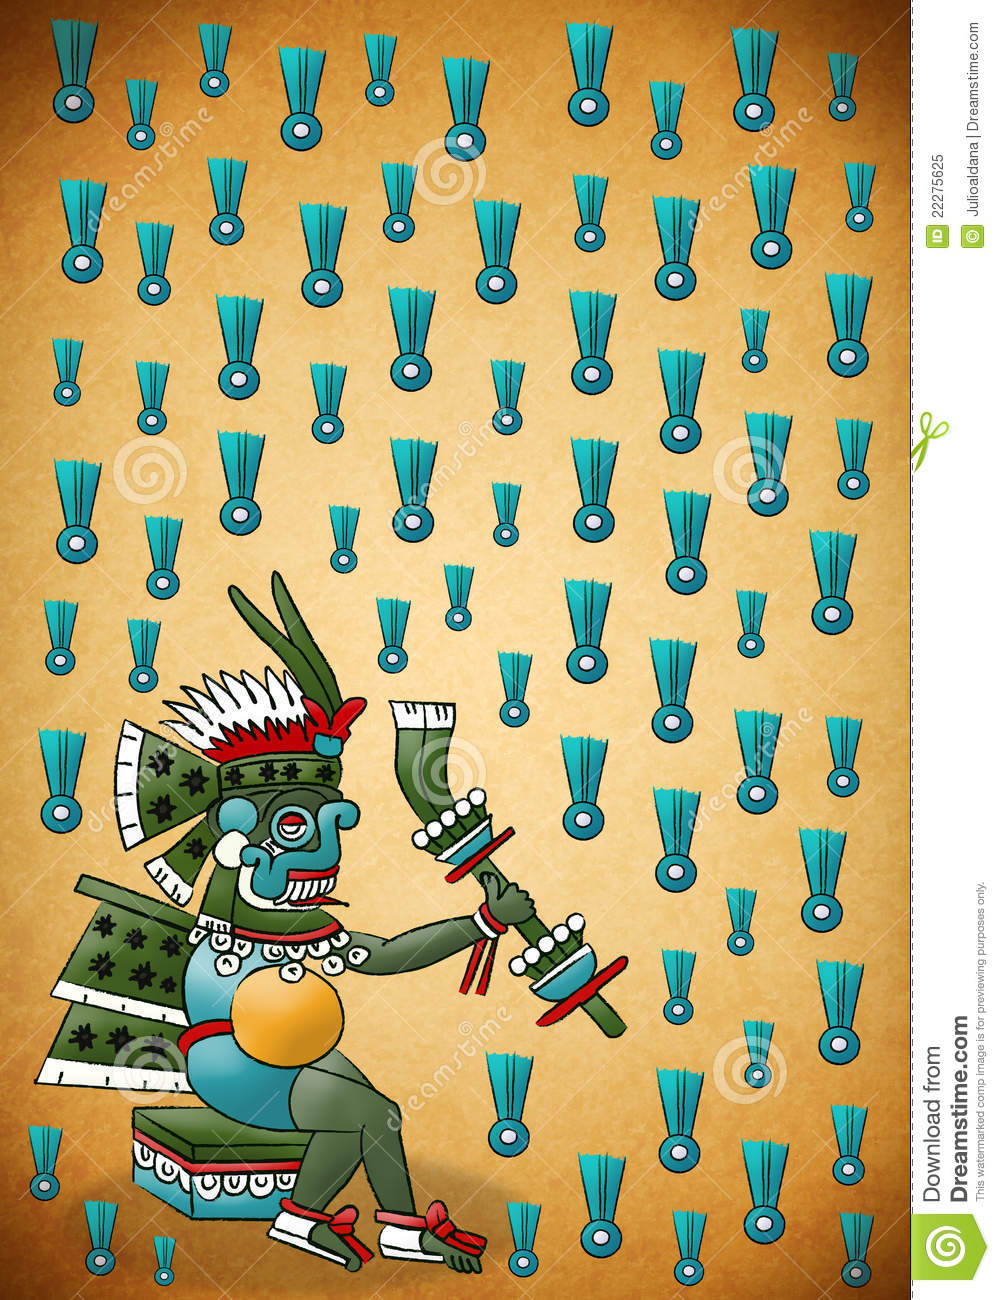 Tlaloc Mayan Aztec Deity Of Water And Rain Stock